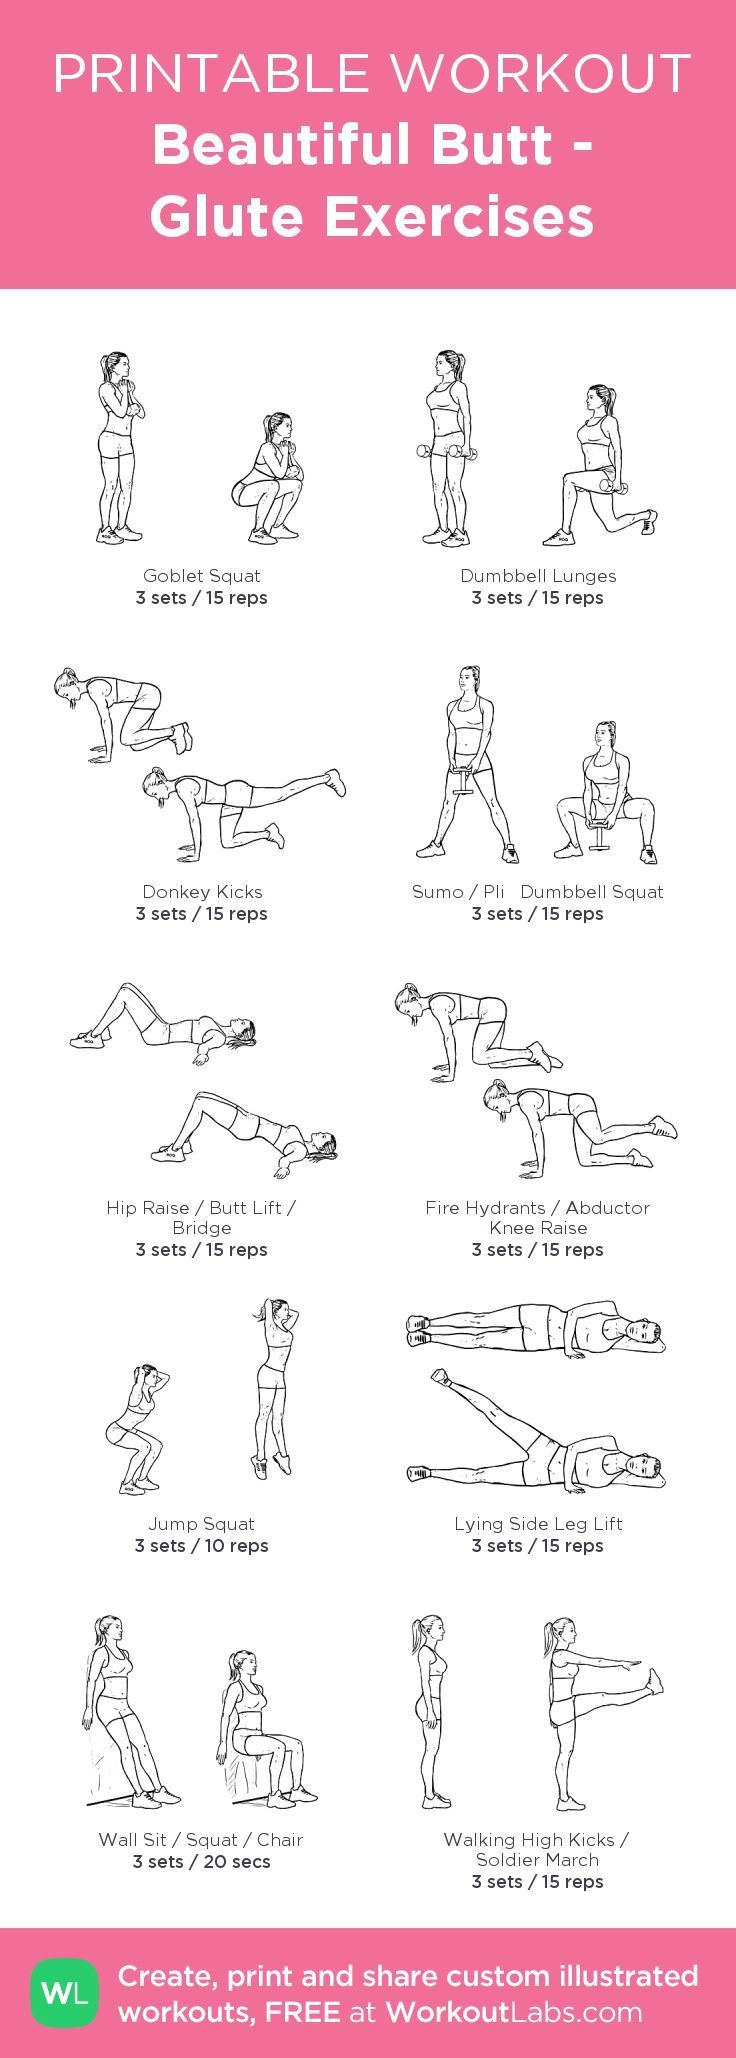 Beautiful Butt - Glute Exercises: my visual workout created at WorkoutLabs.com • Click through to customize and download as a FREE PDF! #customworkout